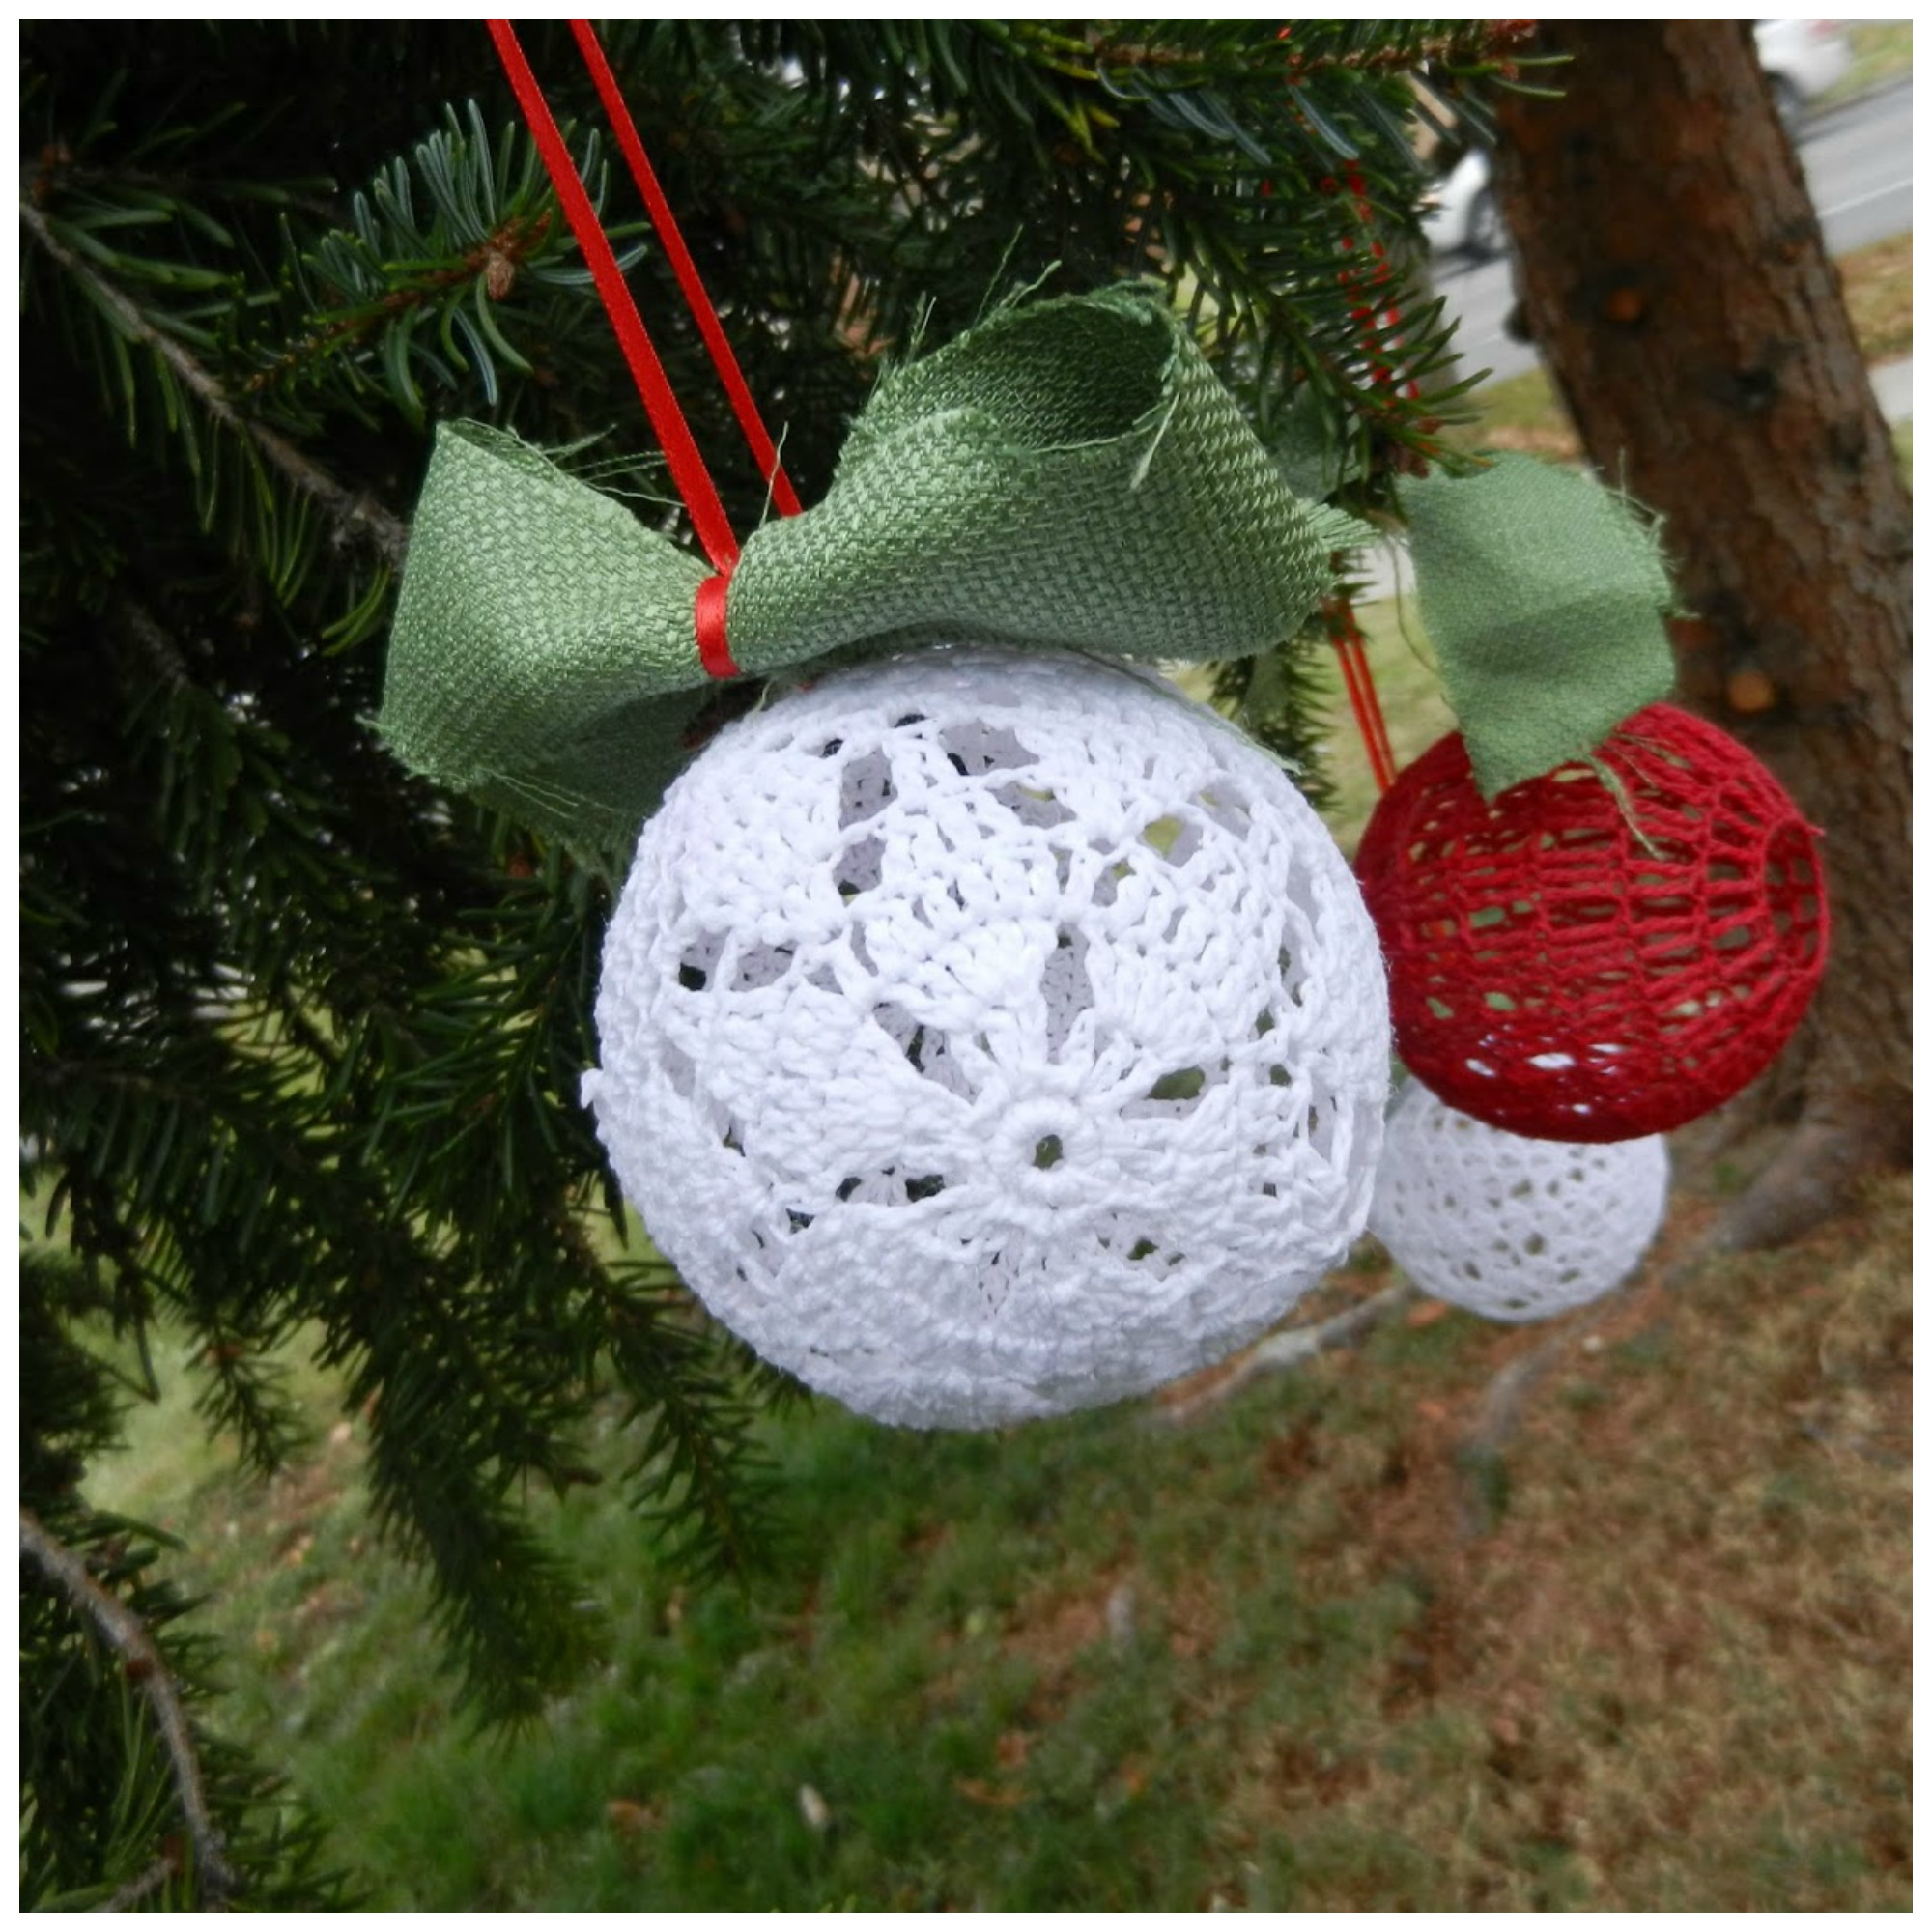 19 Crochet Ornaments for a Handmade Christmas - Stitch and Unwind